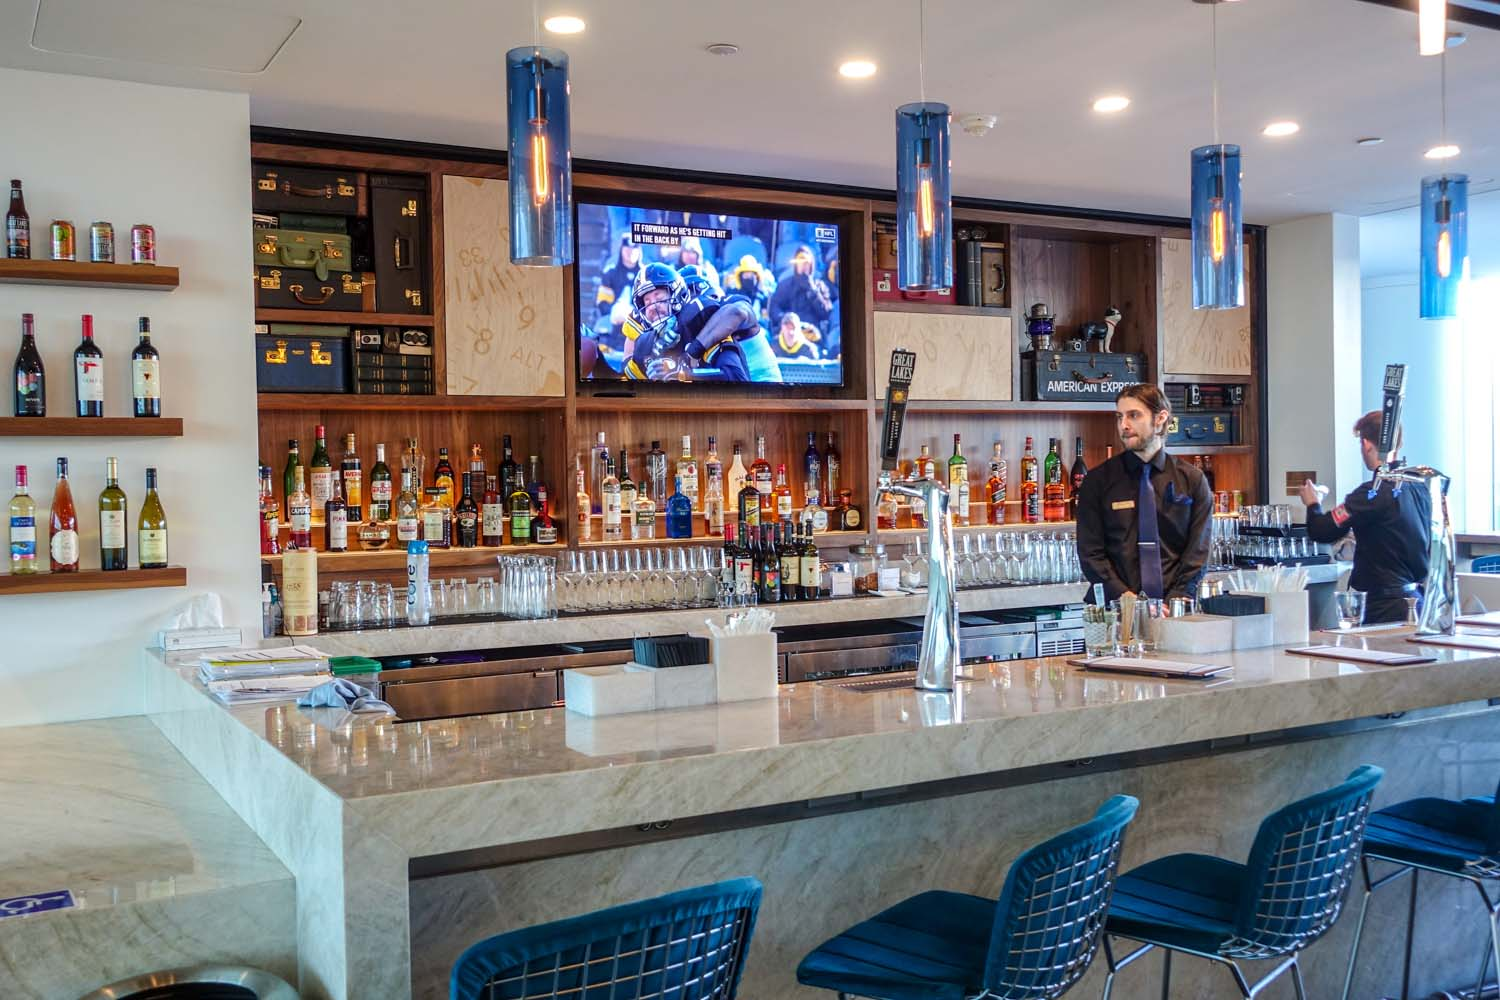 The bar at the Centurion Lounge PHL is fully-stocked